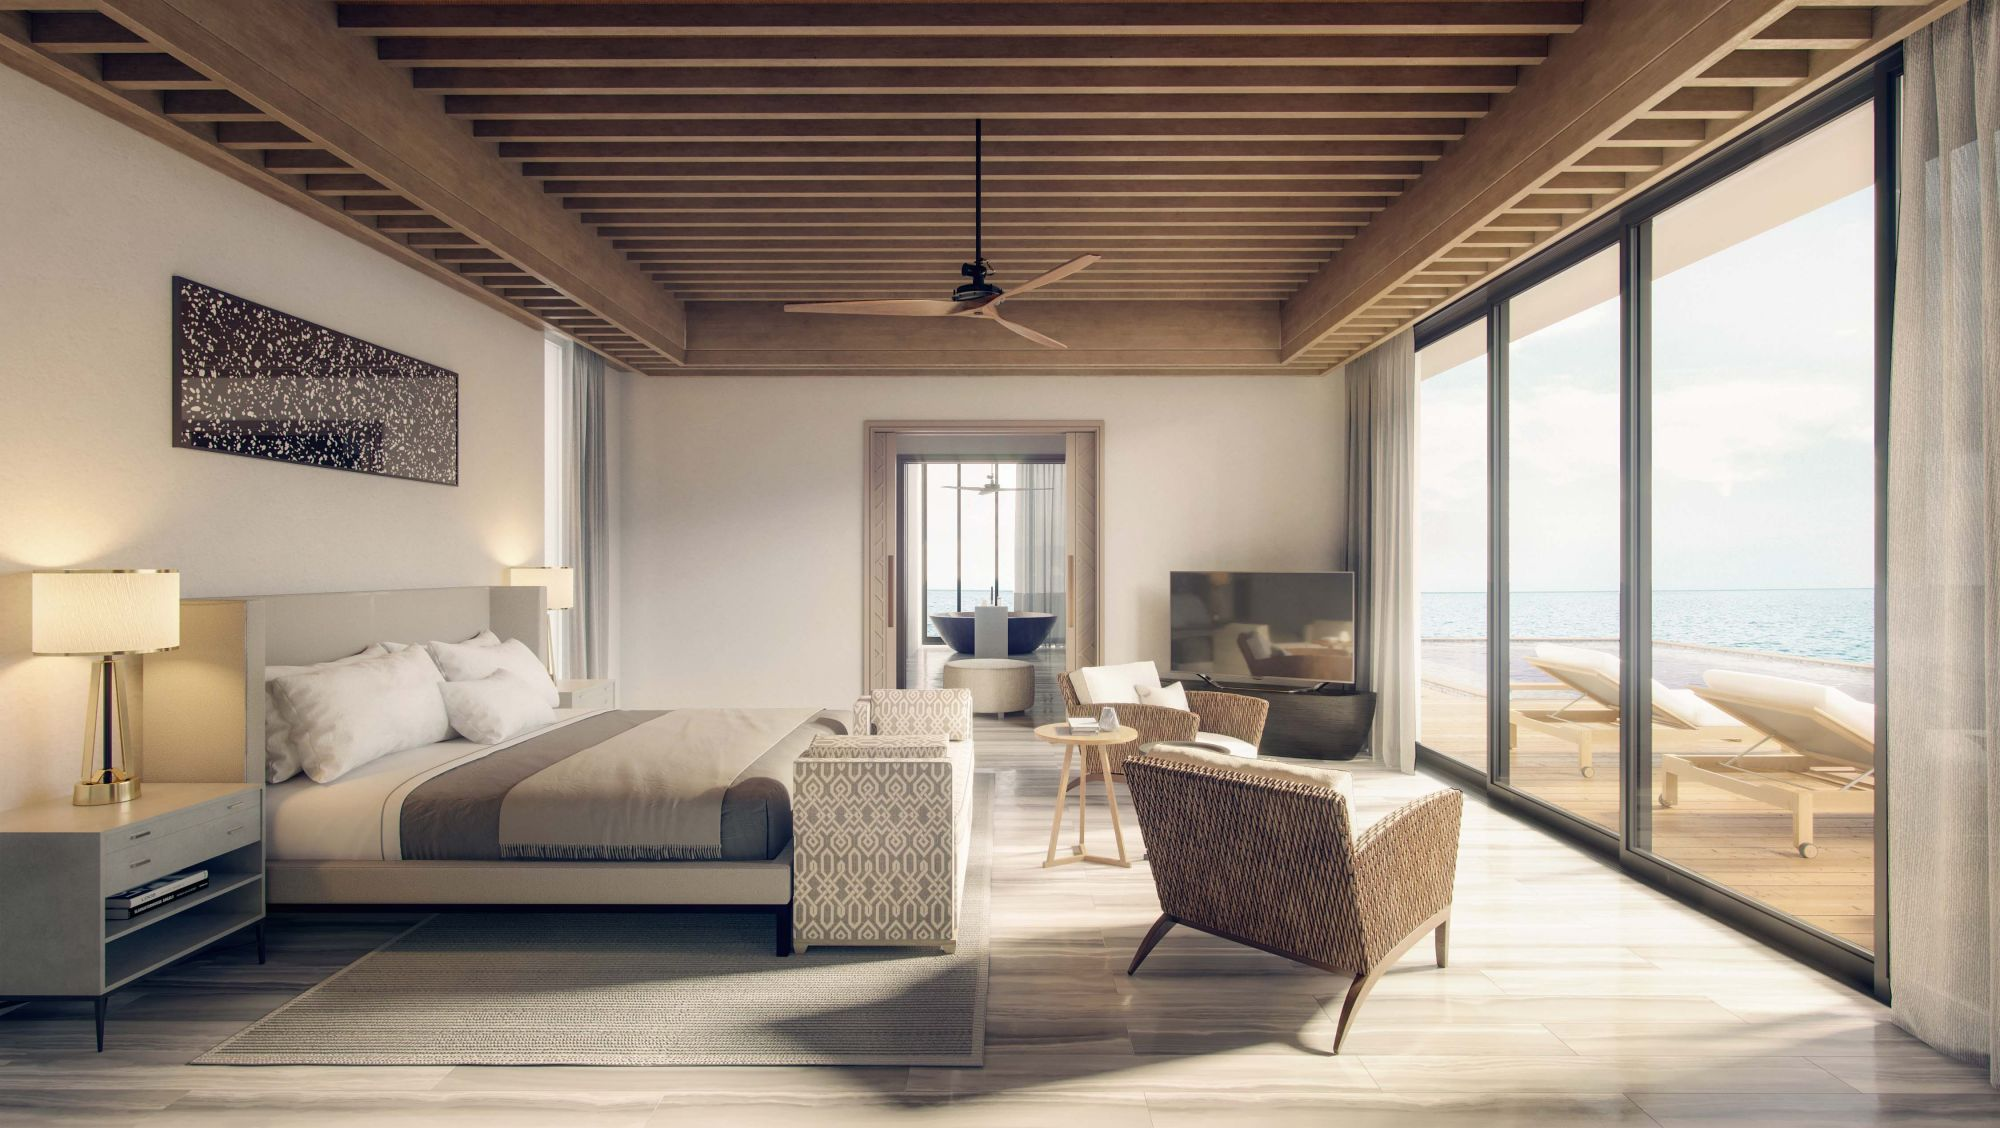 12 New Luxury Hotel Openings To Note In 2019